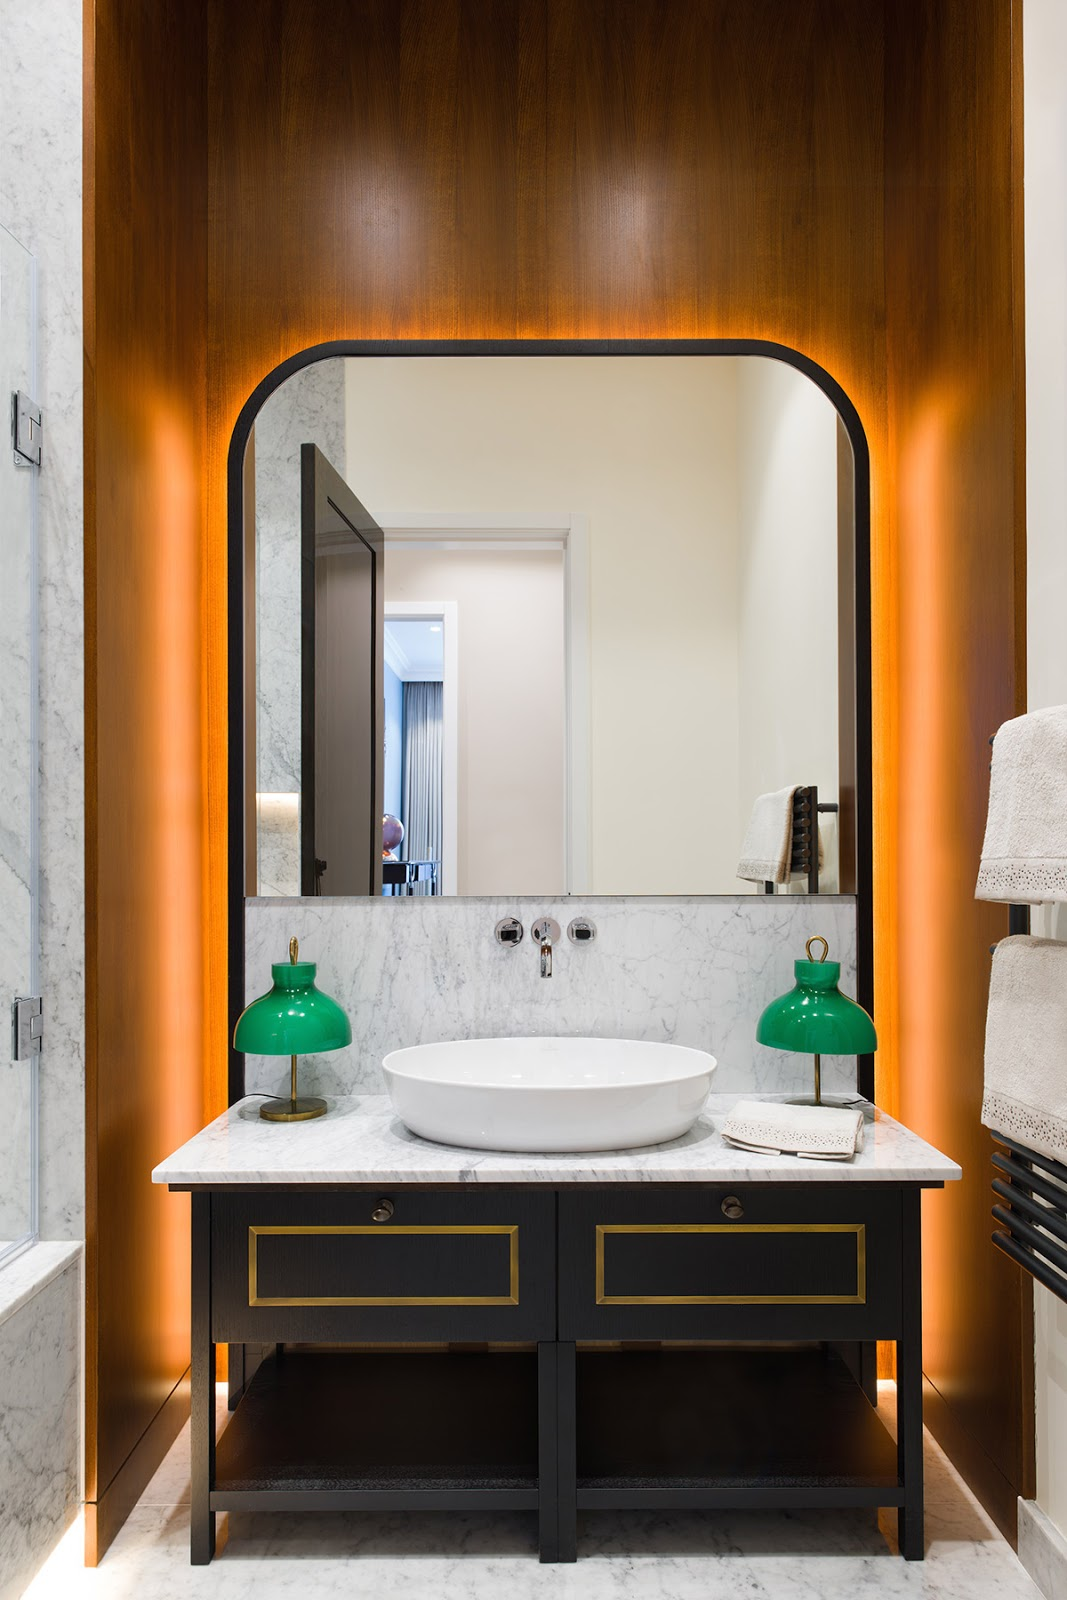 Bathroom with white marble and black furnitue